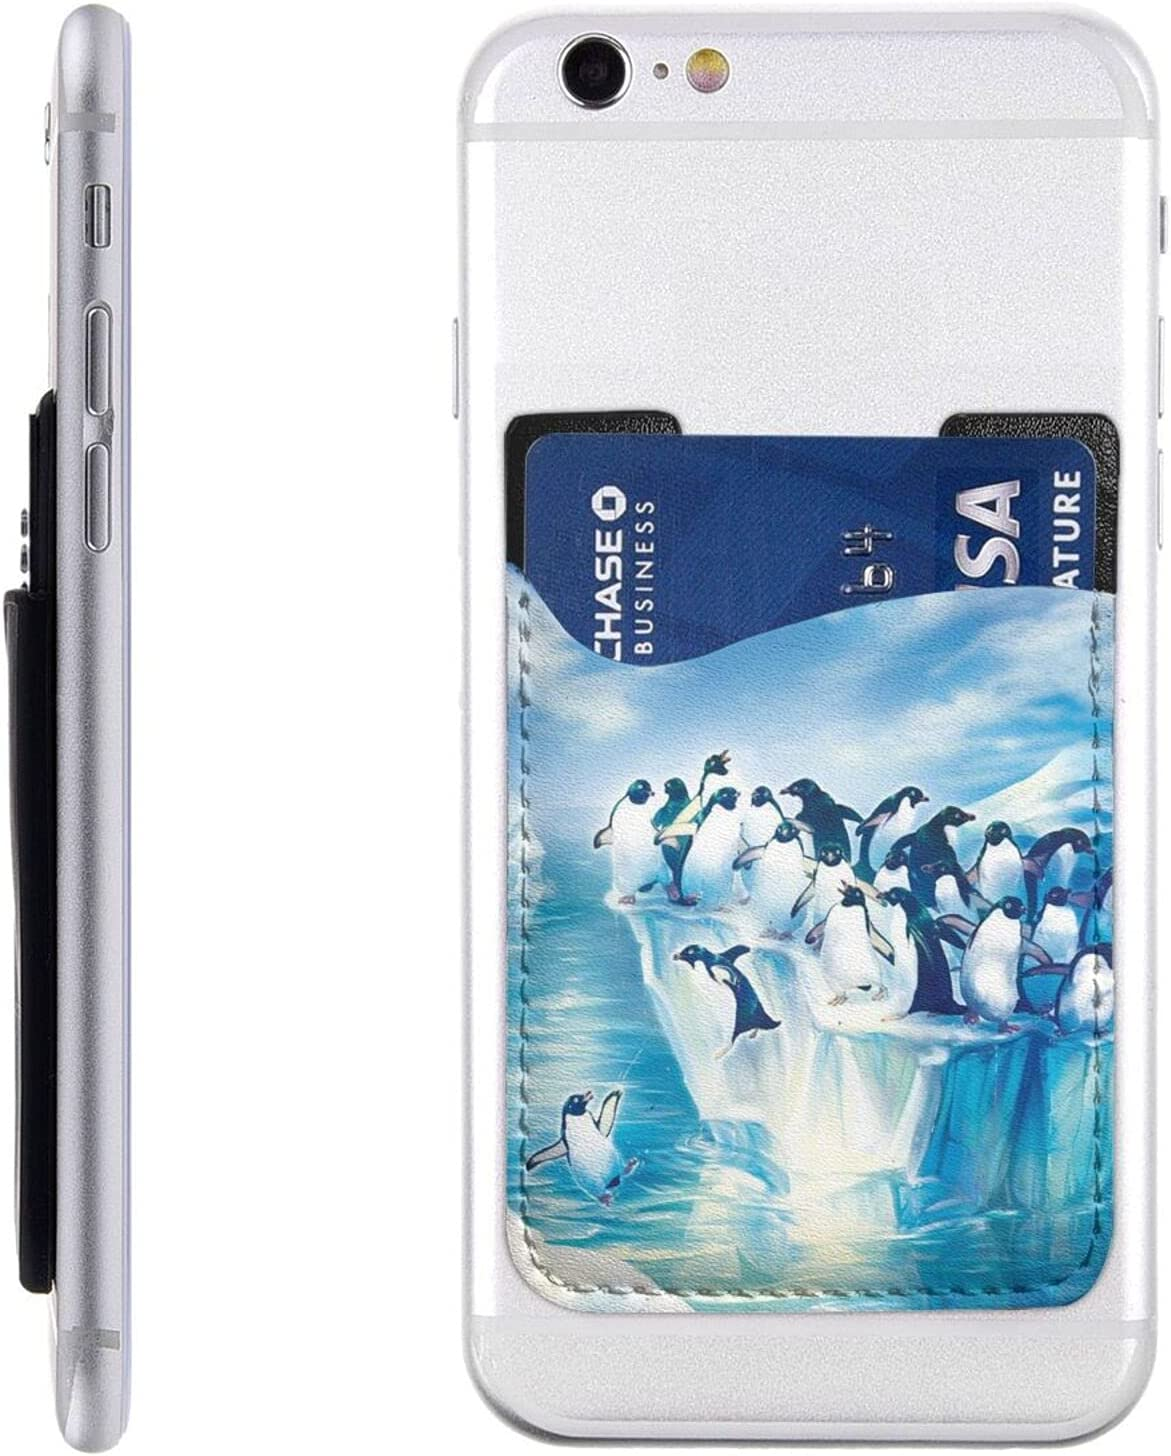 Penguins On Iceberg Phone Card Stick W Holder Cell Large discharge Clearance SALE! Limited time! sale